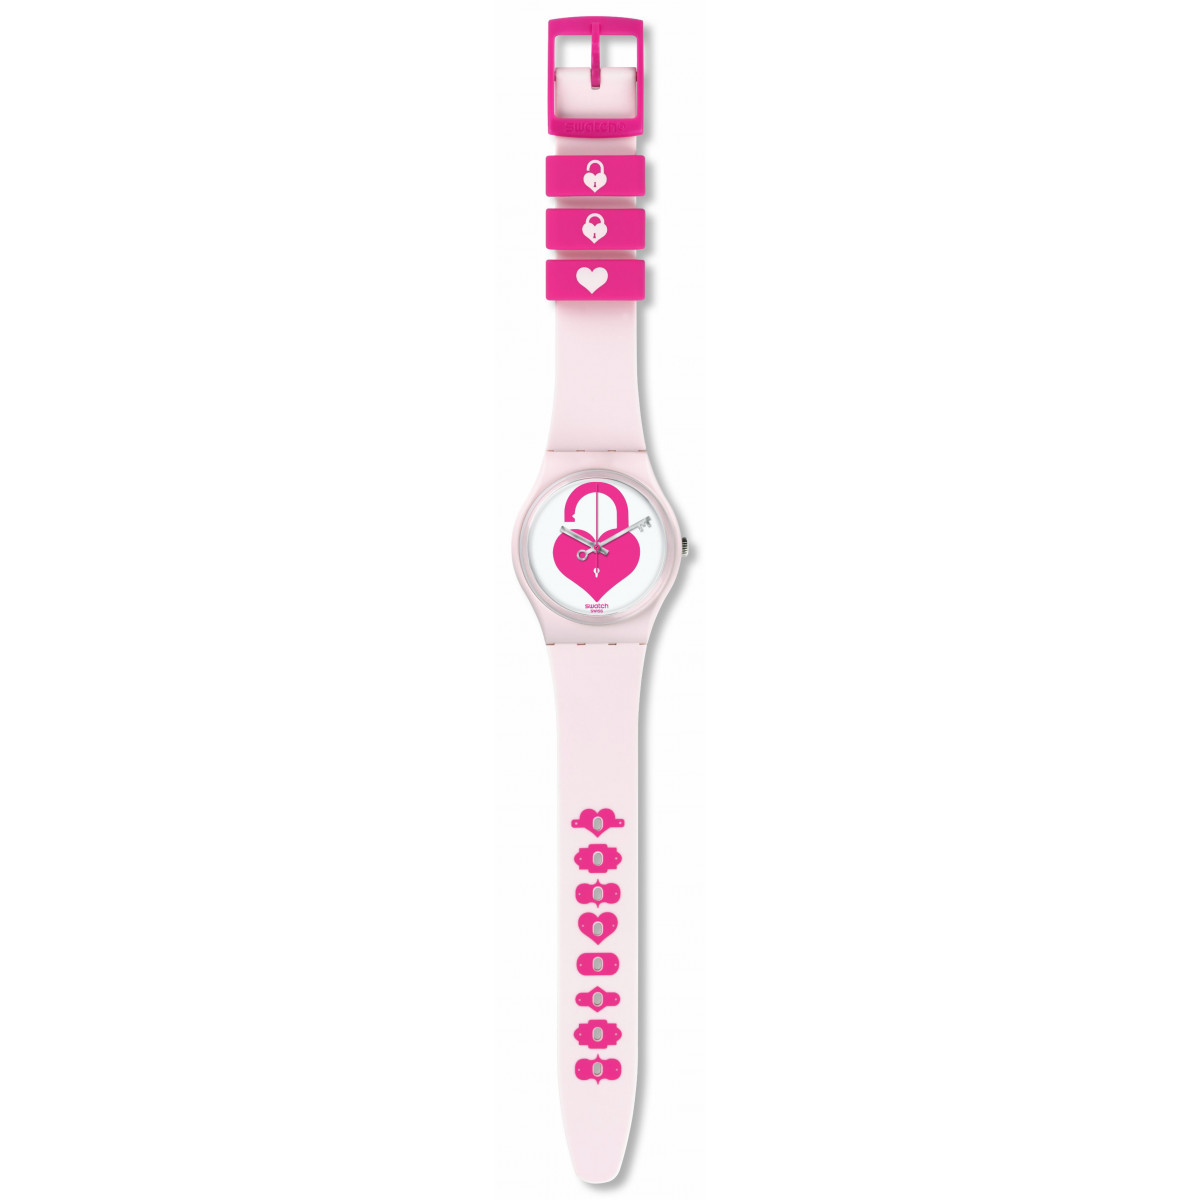 Swatch_GZ292_Unlock_My_Heart_outlet_50%